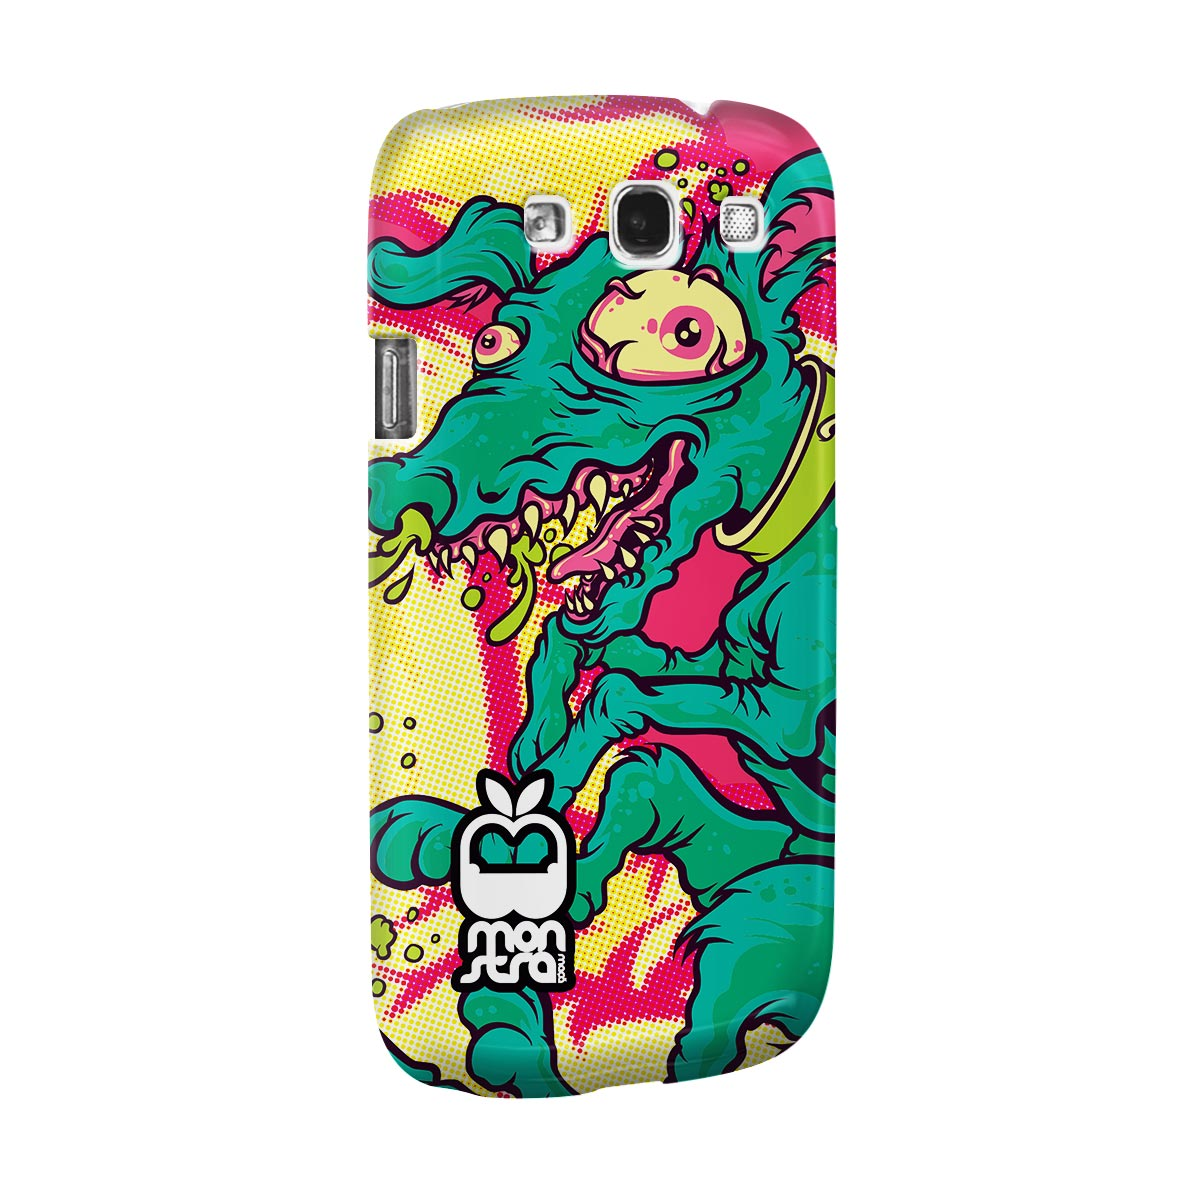 Capa para Samsung Galaxy S3 Monstra Maçã Crazy Dog